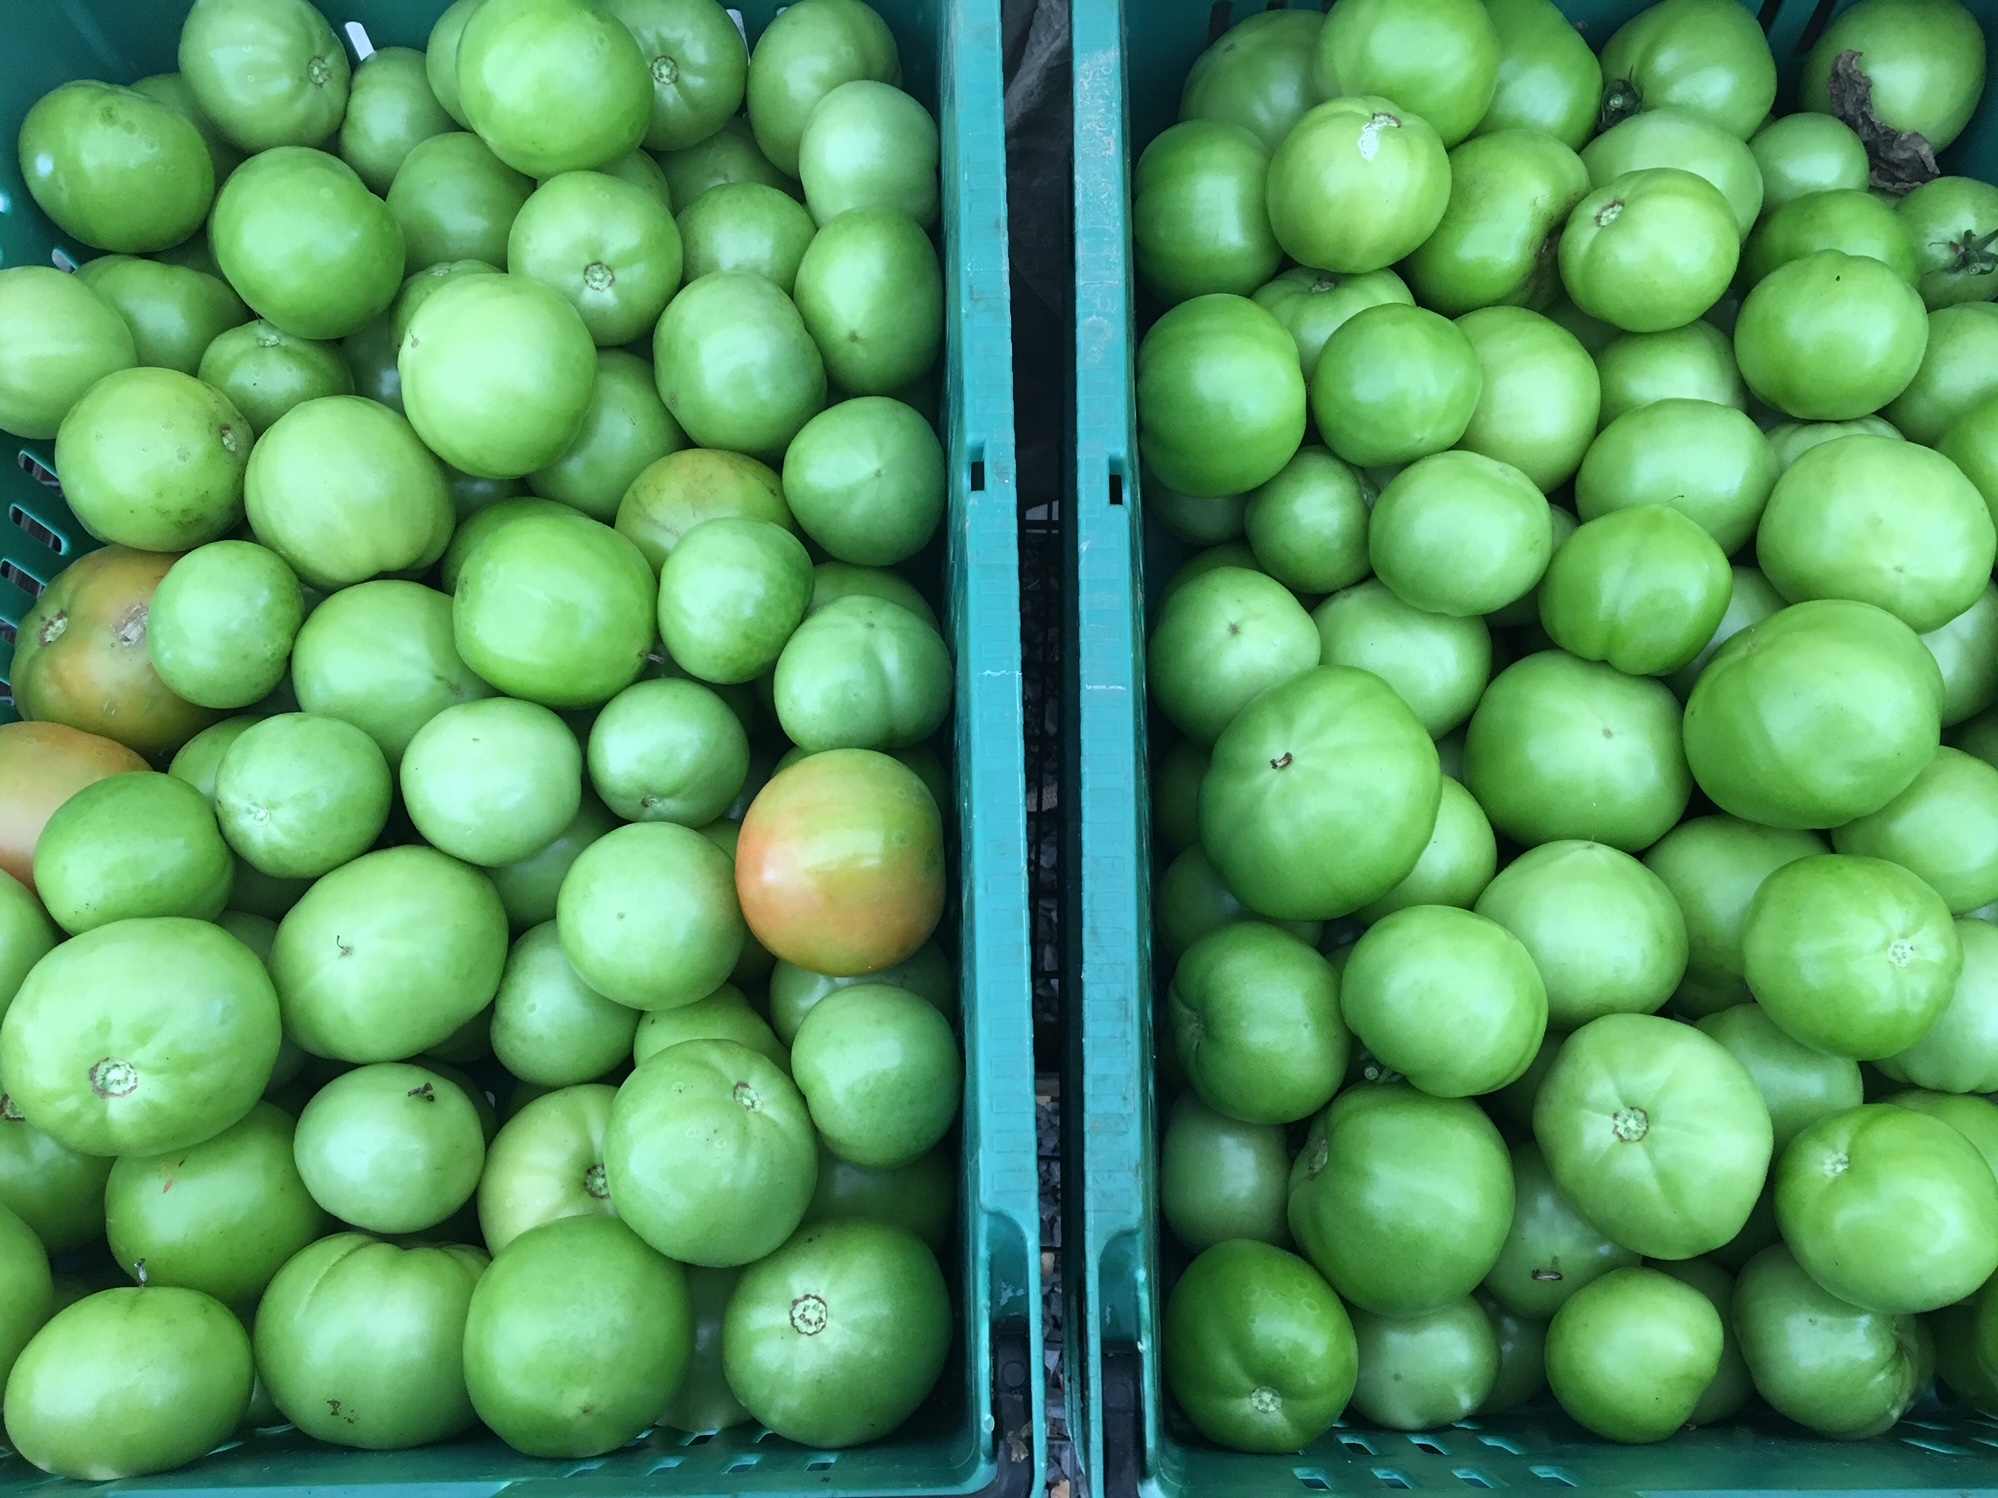 Green tomatoes ready for distribution